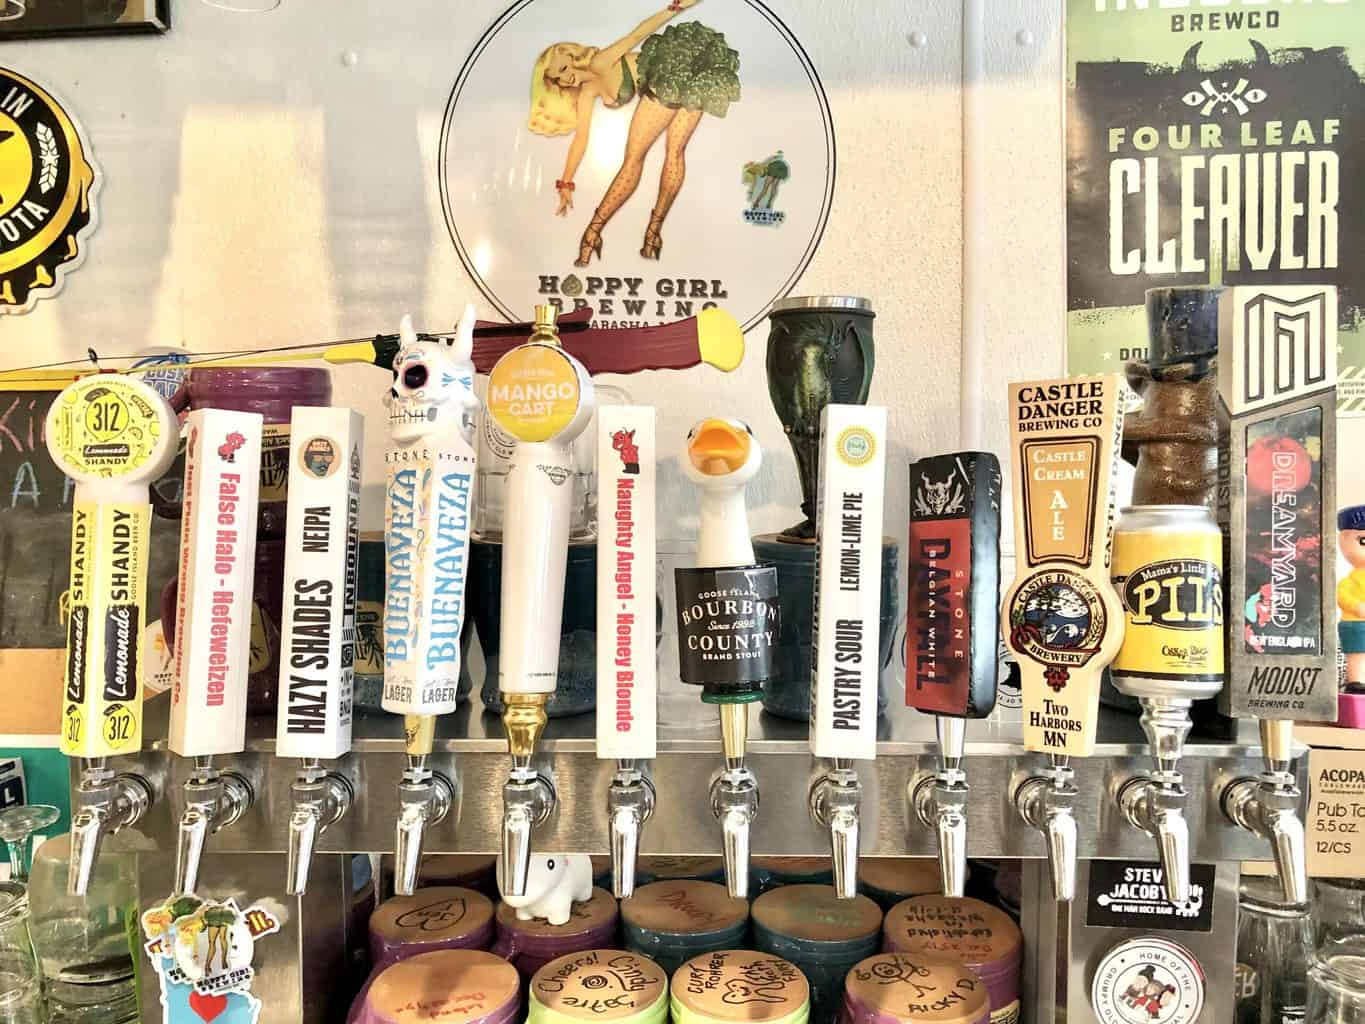 guest-taps-hoppy-girl-brewing-may-14-2021